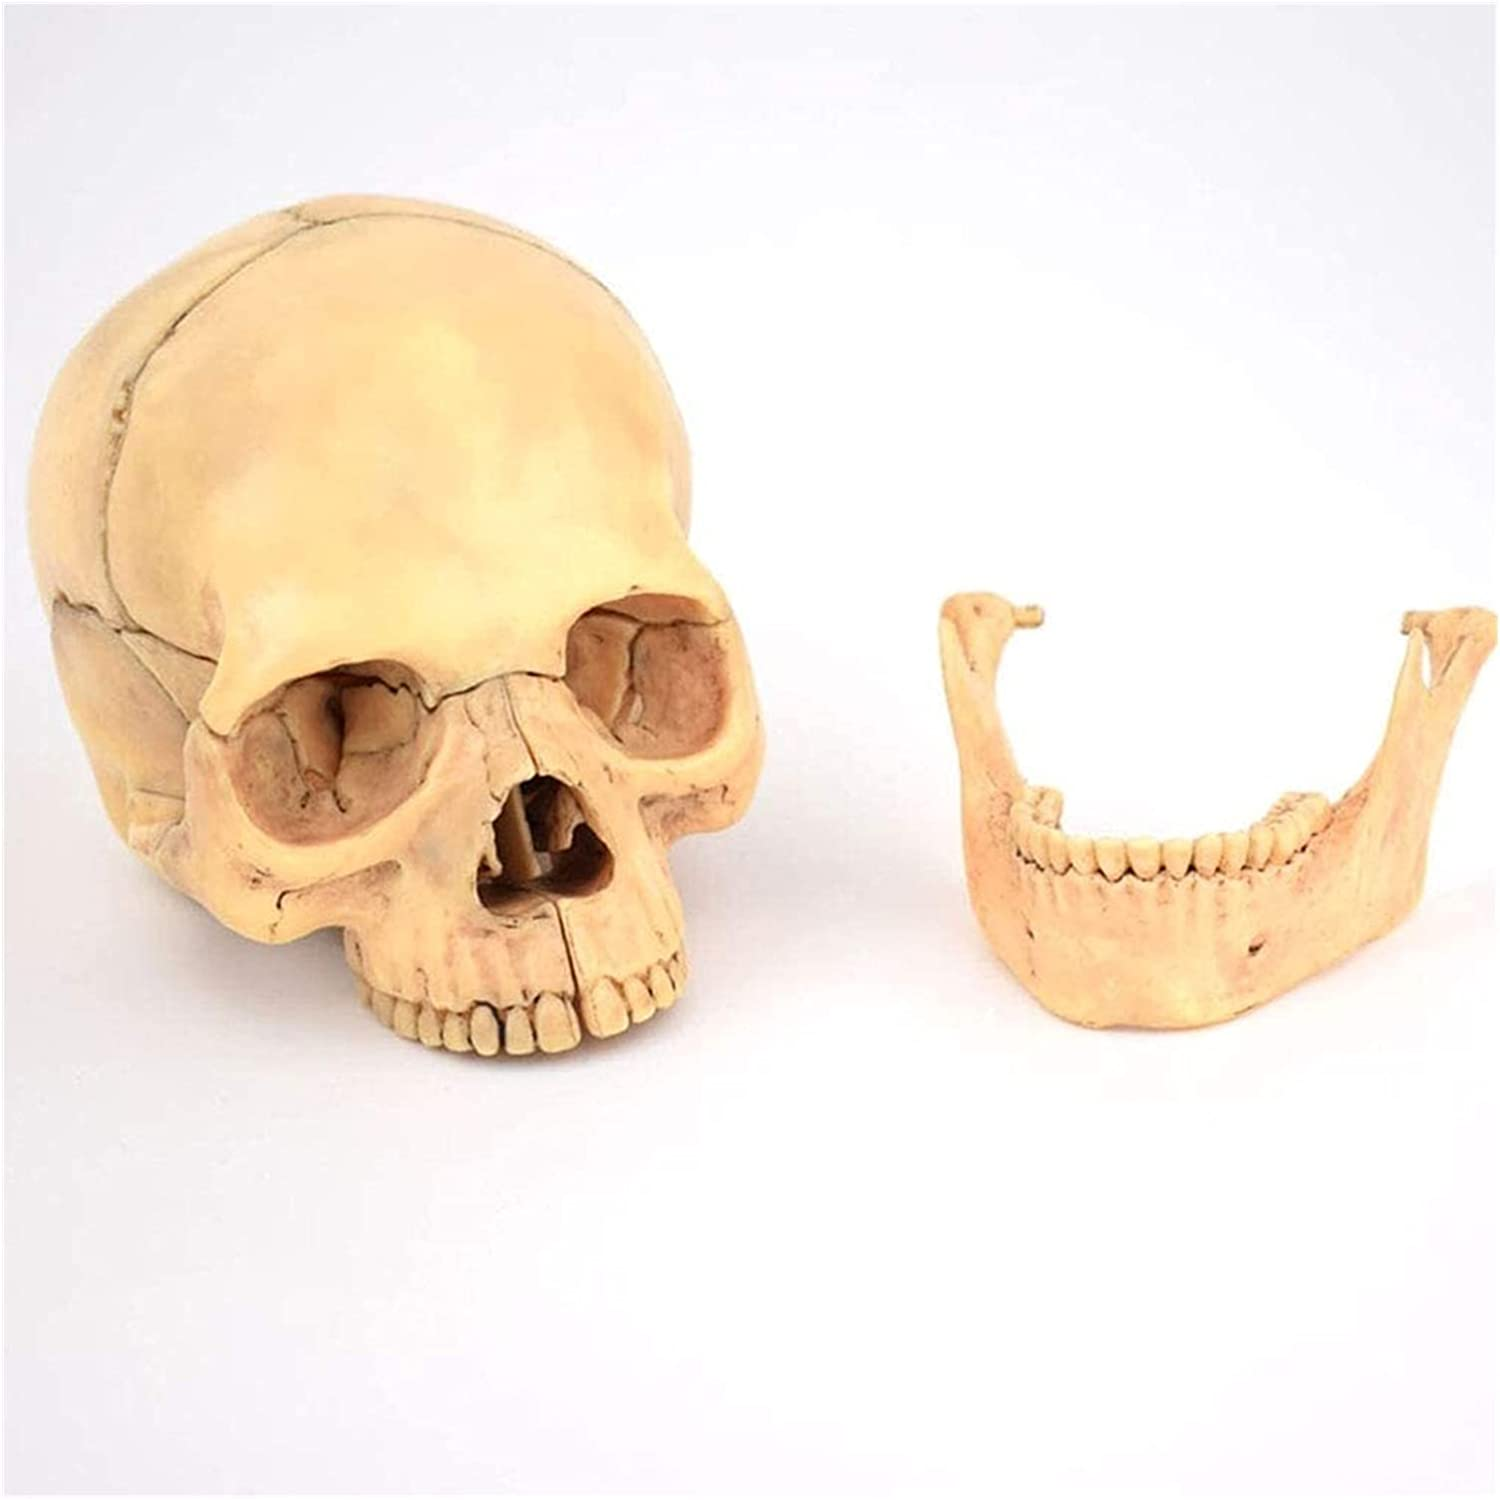 1:2 famous Life Size Today's only Skull Model Teachin Human Classic Anatomical